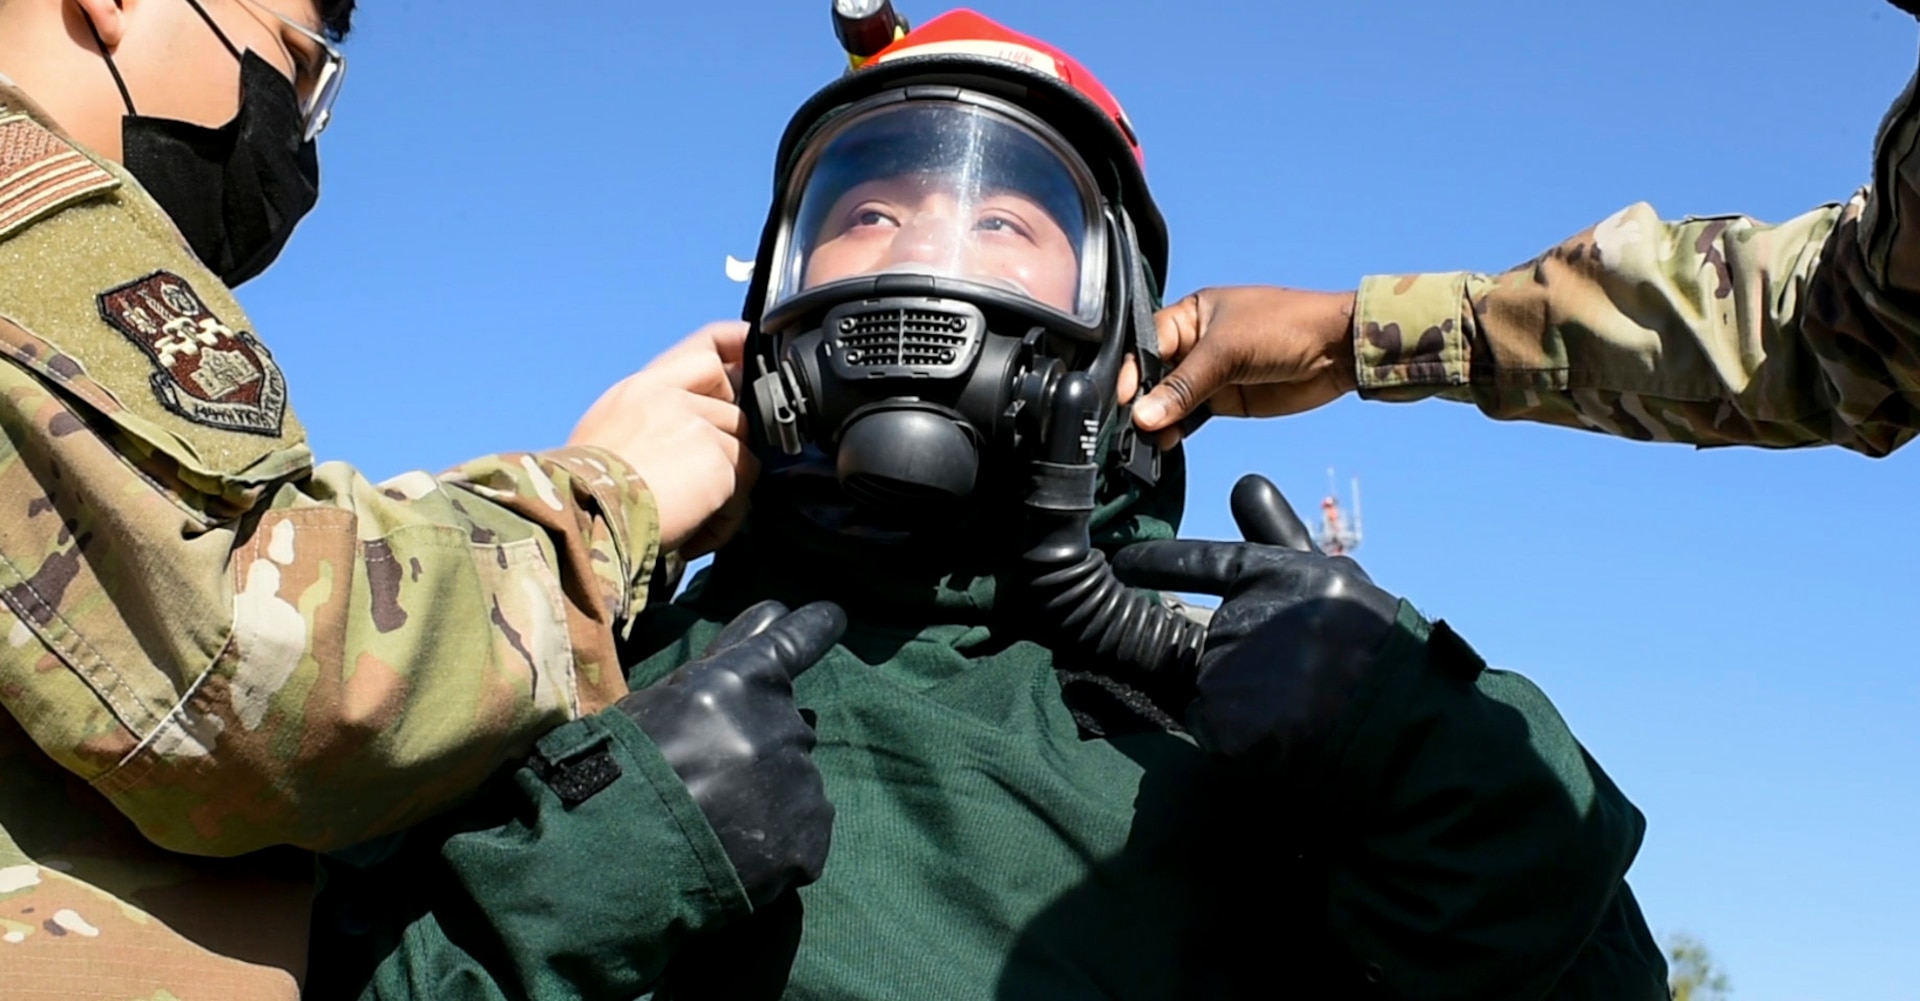 Staff Sgt. Benjamin Le (center) is assisted by Airman 1st Class Tyler Jimison (left) and Airman 1st Class Beatrice Hiyunsaba (right), in getting his helmet properly fastened Nov. 15 at Joint Base San Antonio-Lackland. All are assigned to the 149th Fighter Wing fatality search and recovery team, or FSRT, and were training on how to move into a contaminated area and recover remains after a chemical disaster.